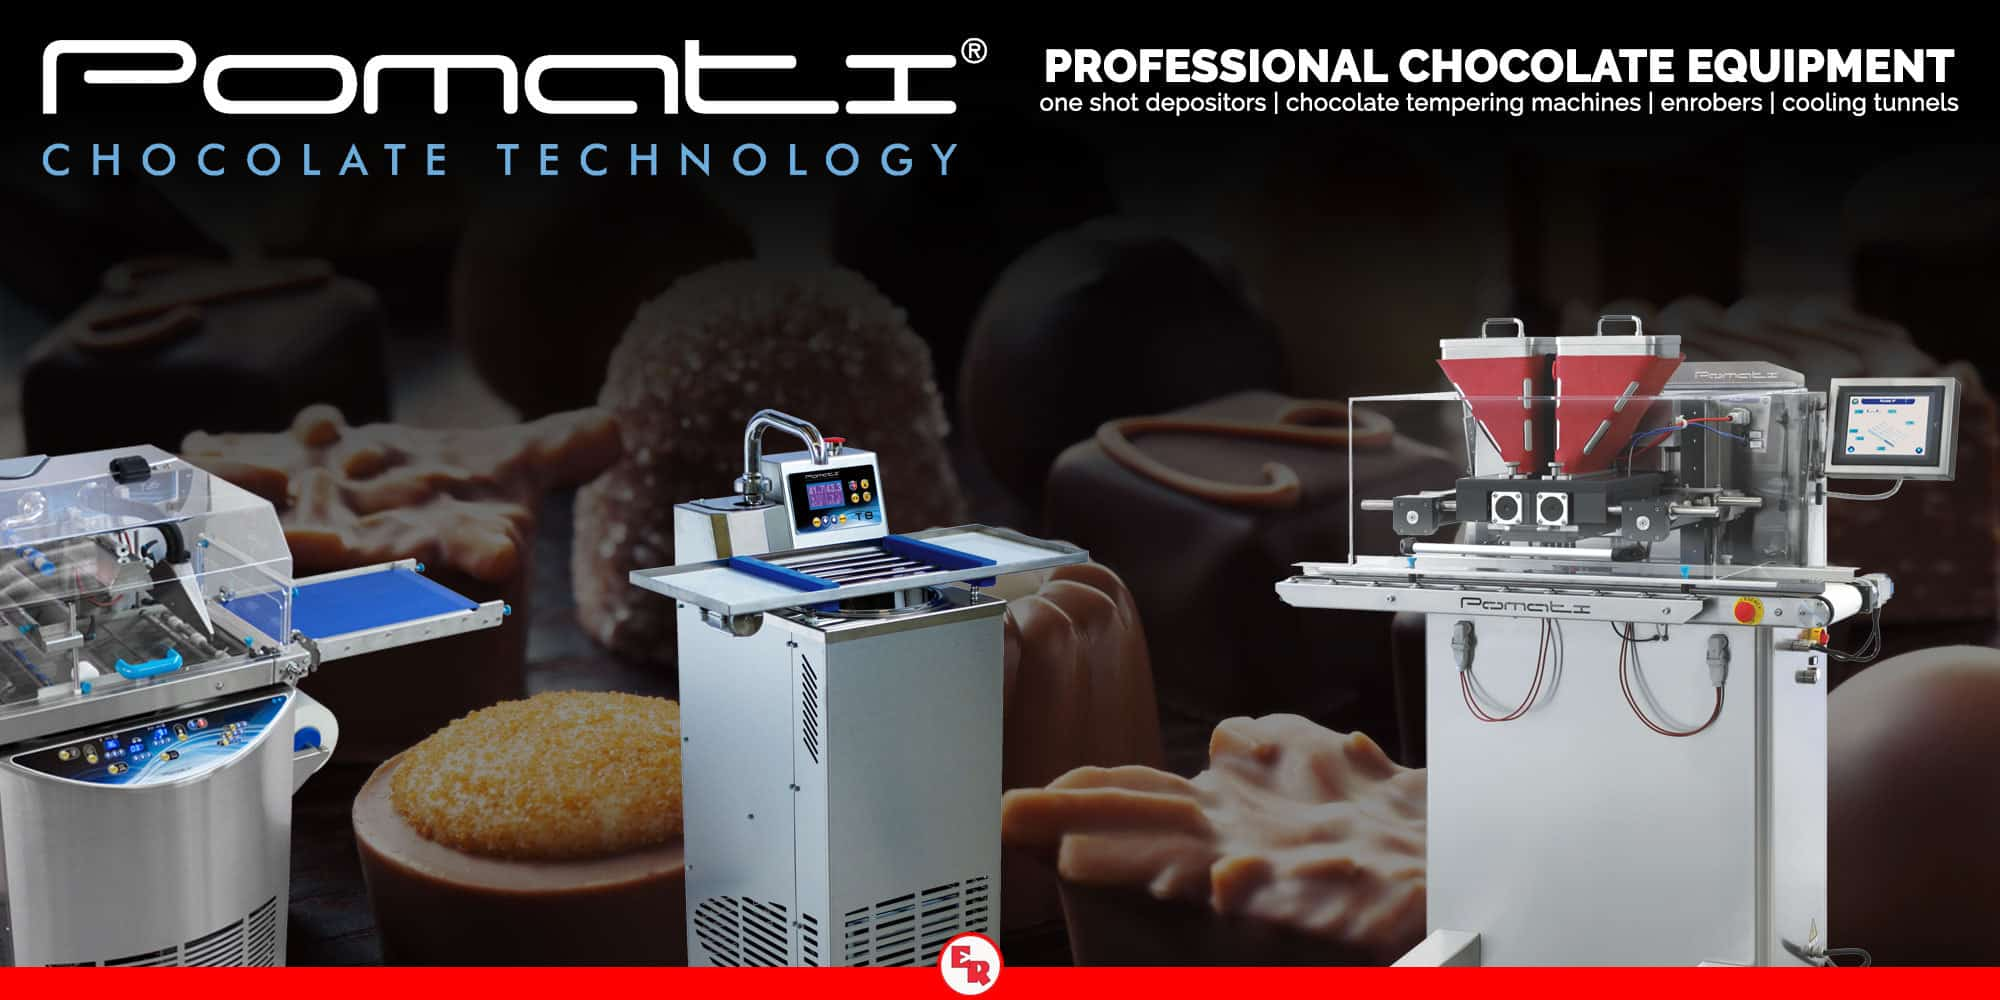 Pomati | Professional Chocolate Equipment